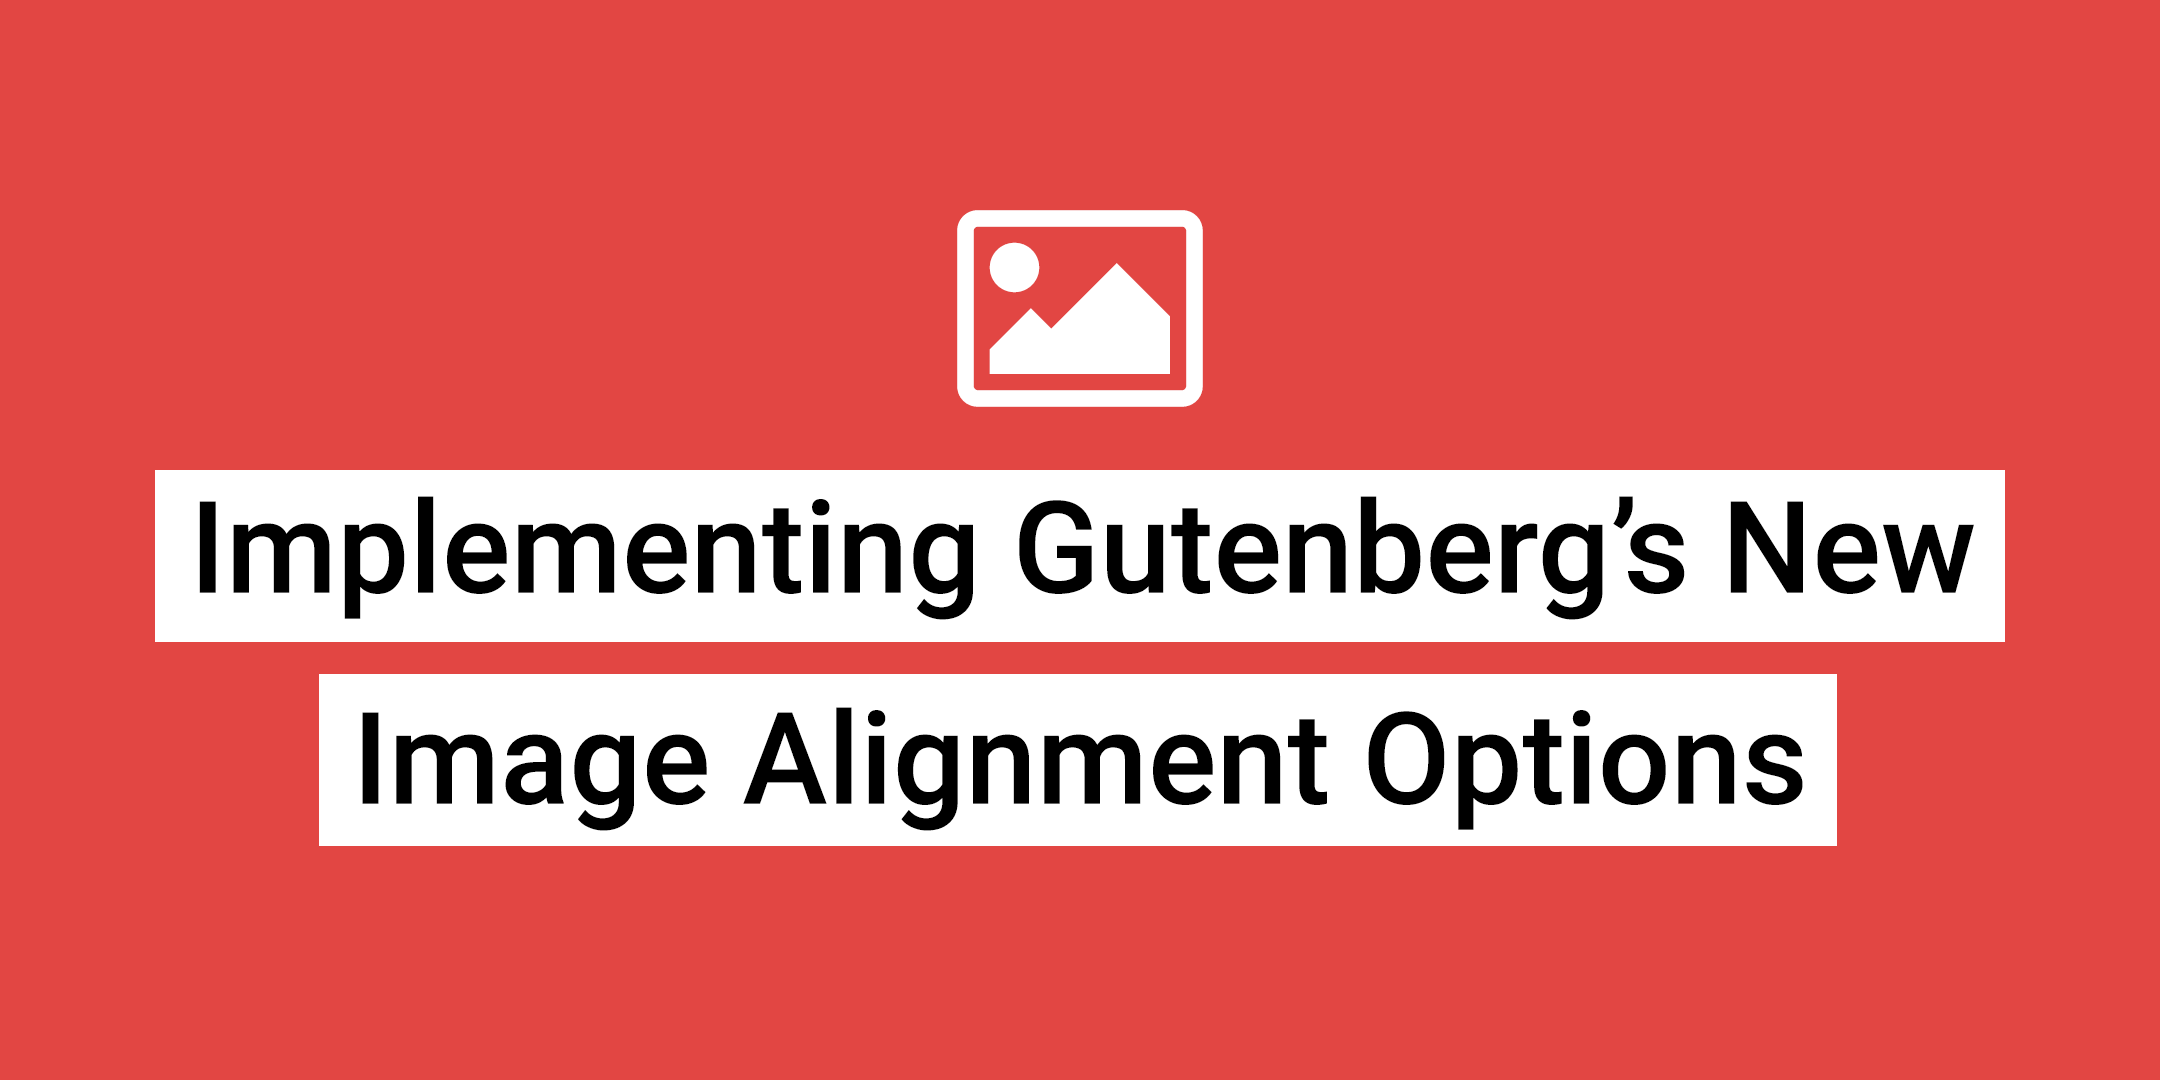 Gutenberg Image Alignment